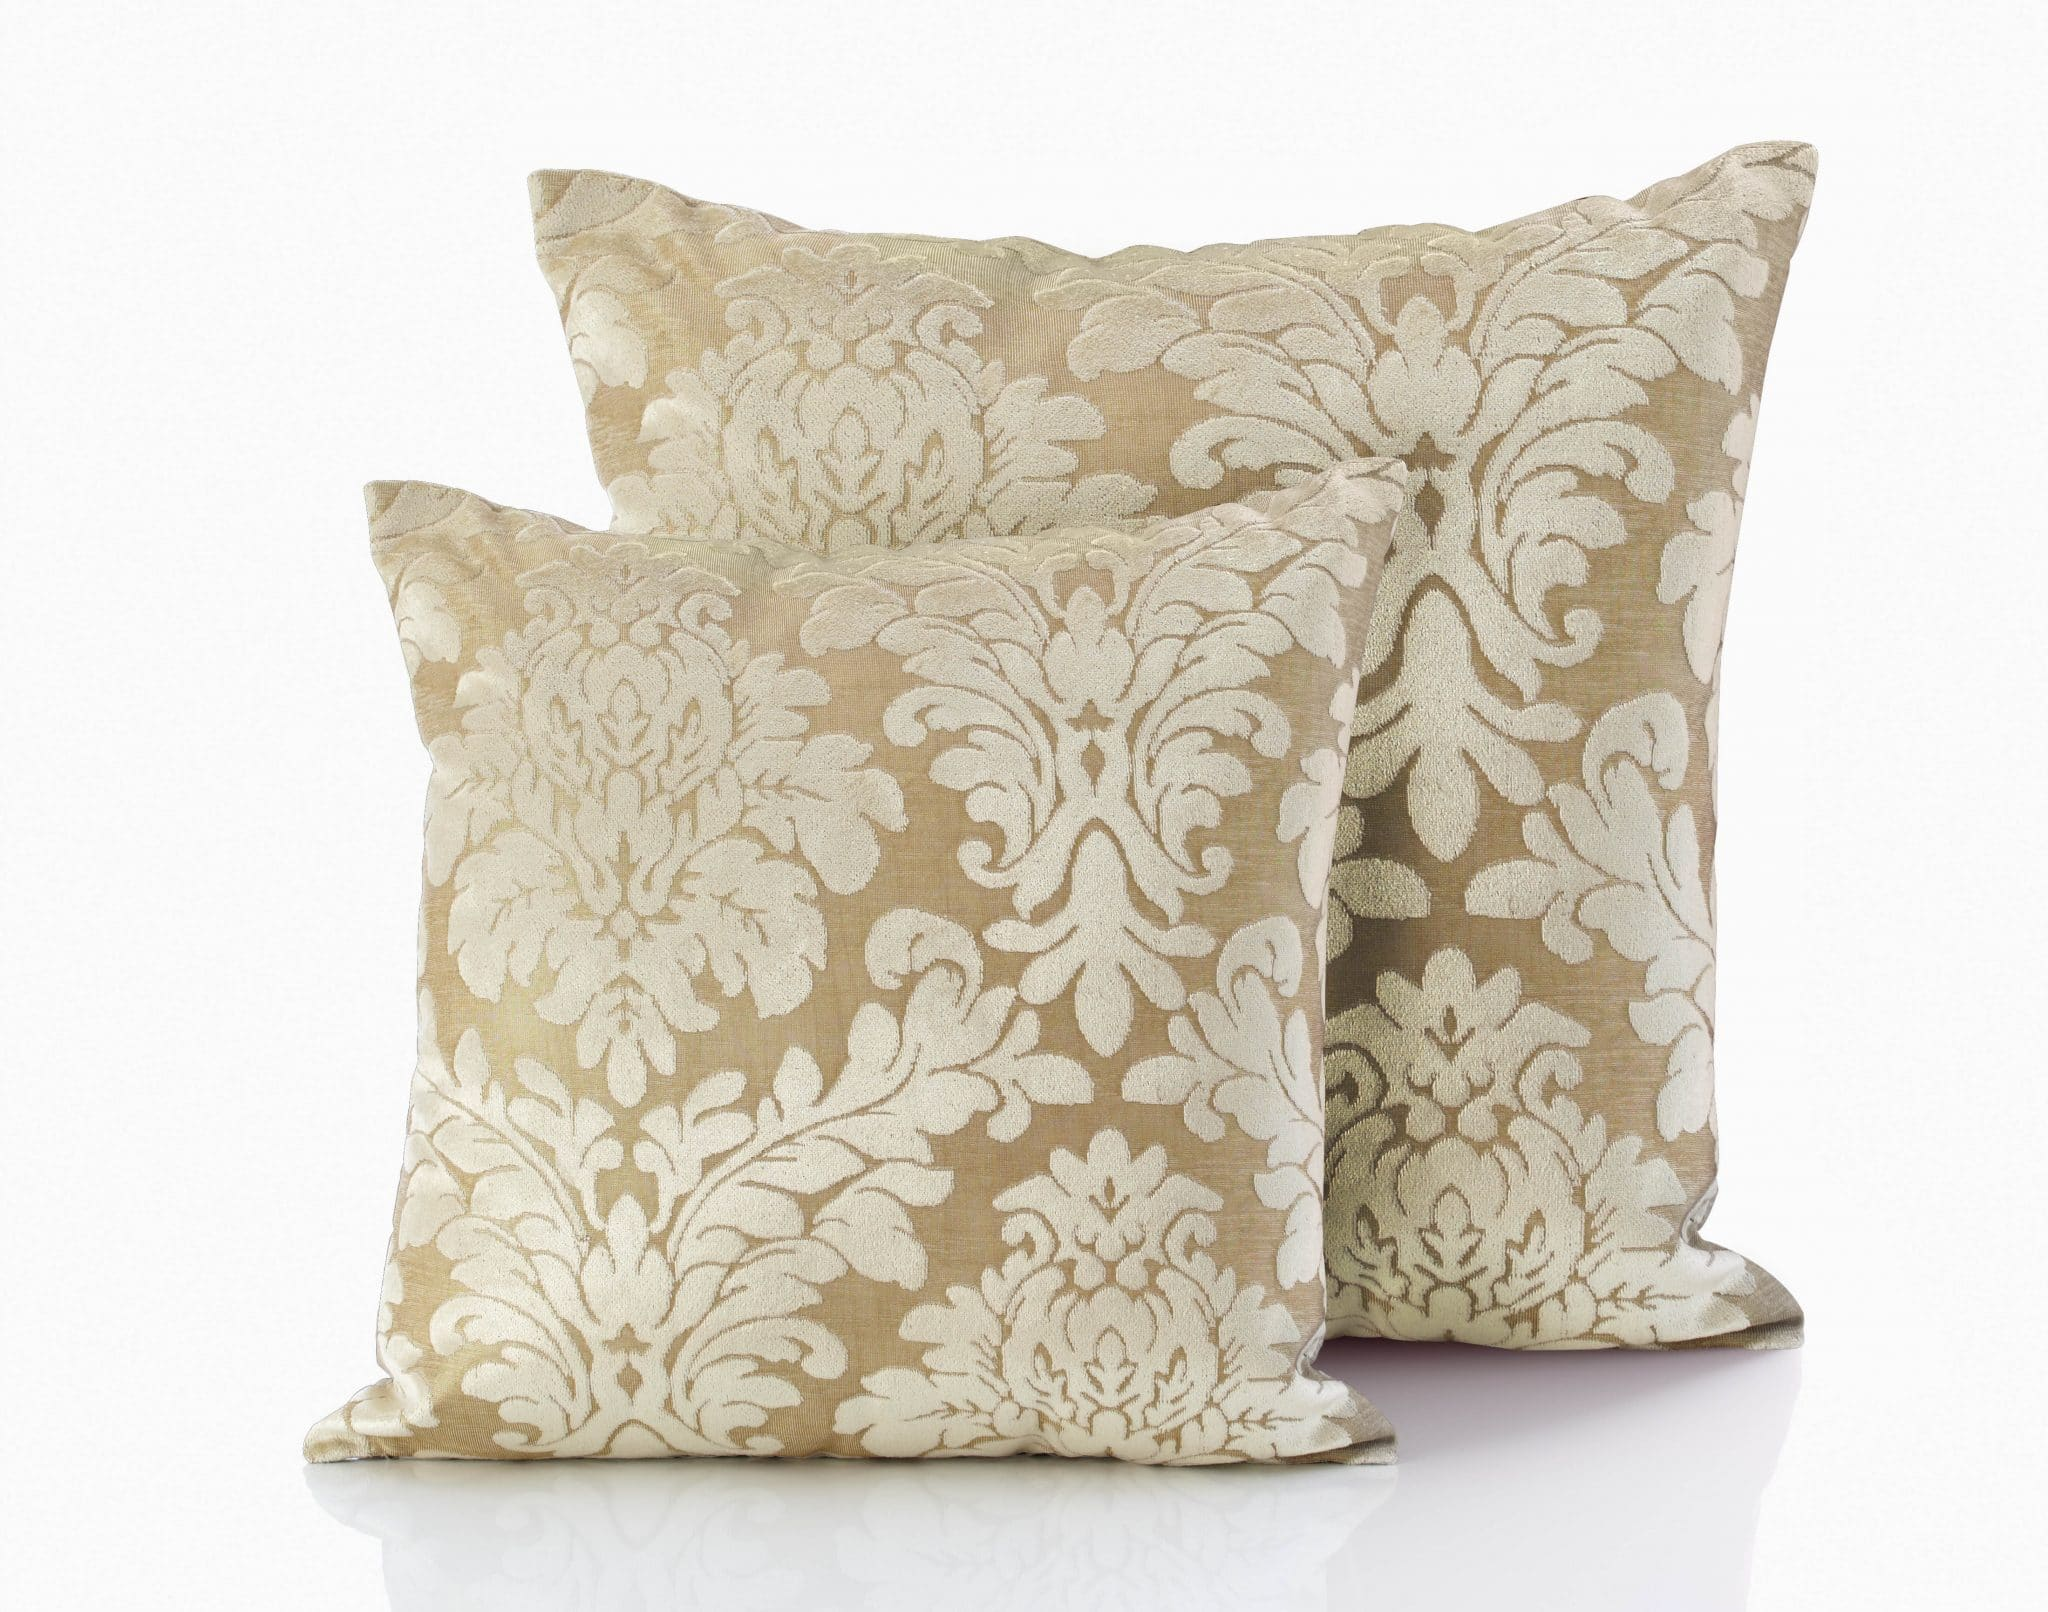 Downton cream cushion covers dublin ireland for Sofa cushion covers ireland